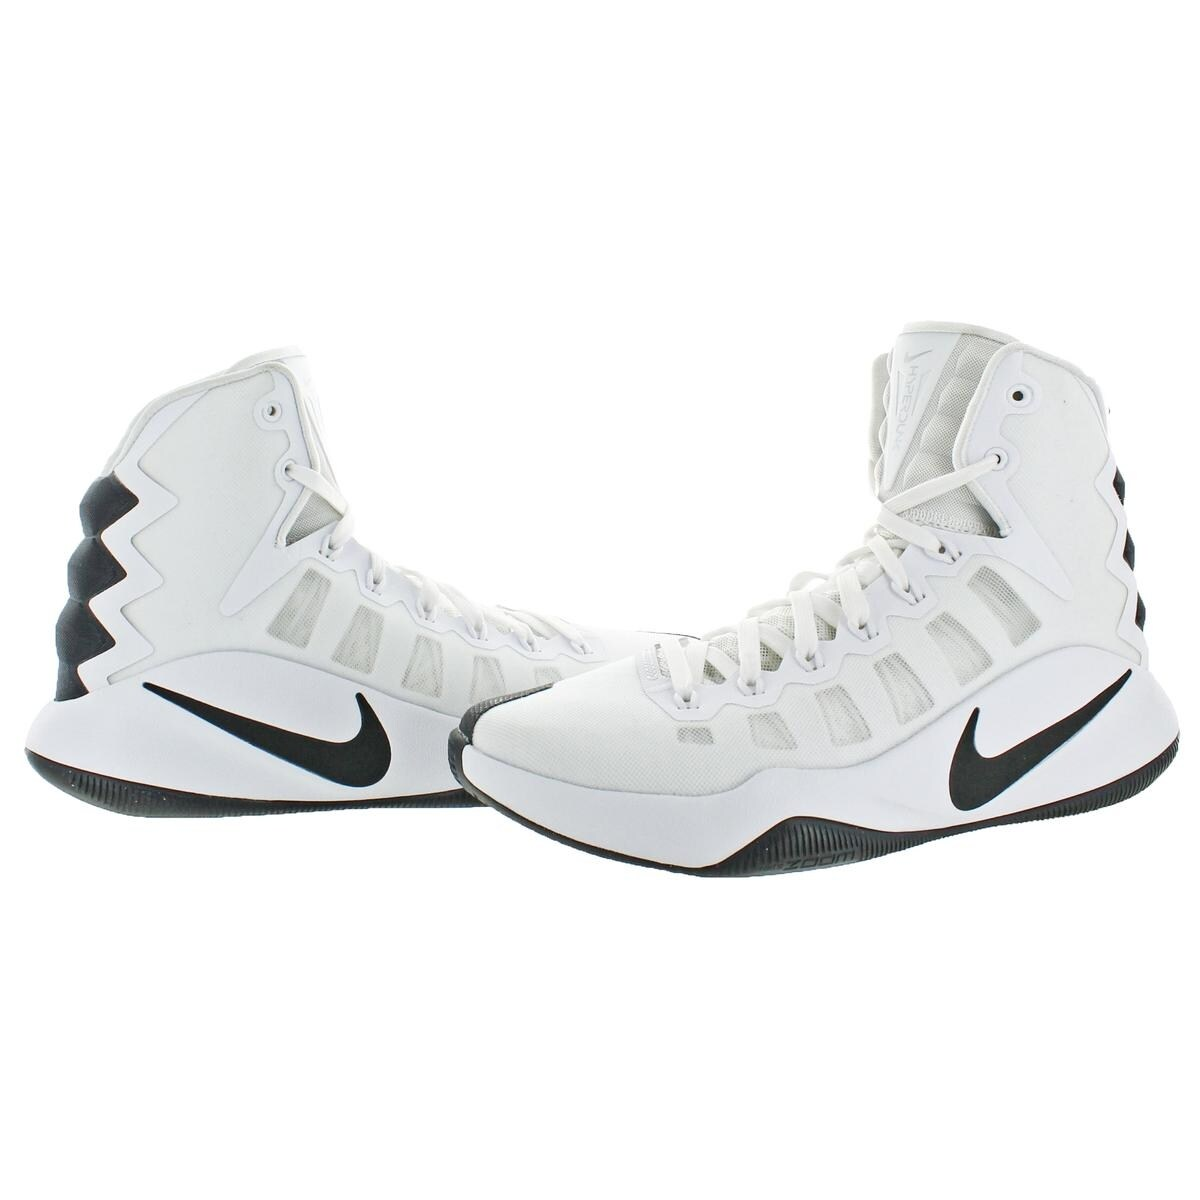 competitive price fb1a6 6d6ef Shop Nike Womens Hyperdunk 2016 TB Basketball Shoes Nike Zoom Mid Top -  Free Shipping On Orders Over  45 - Overstock - 21803225